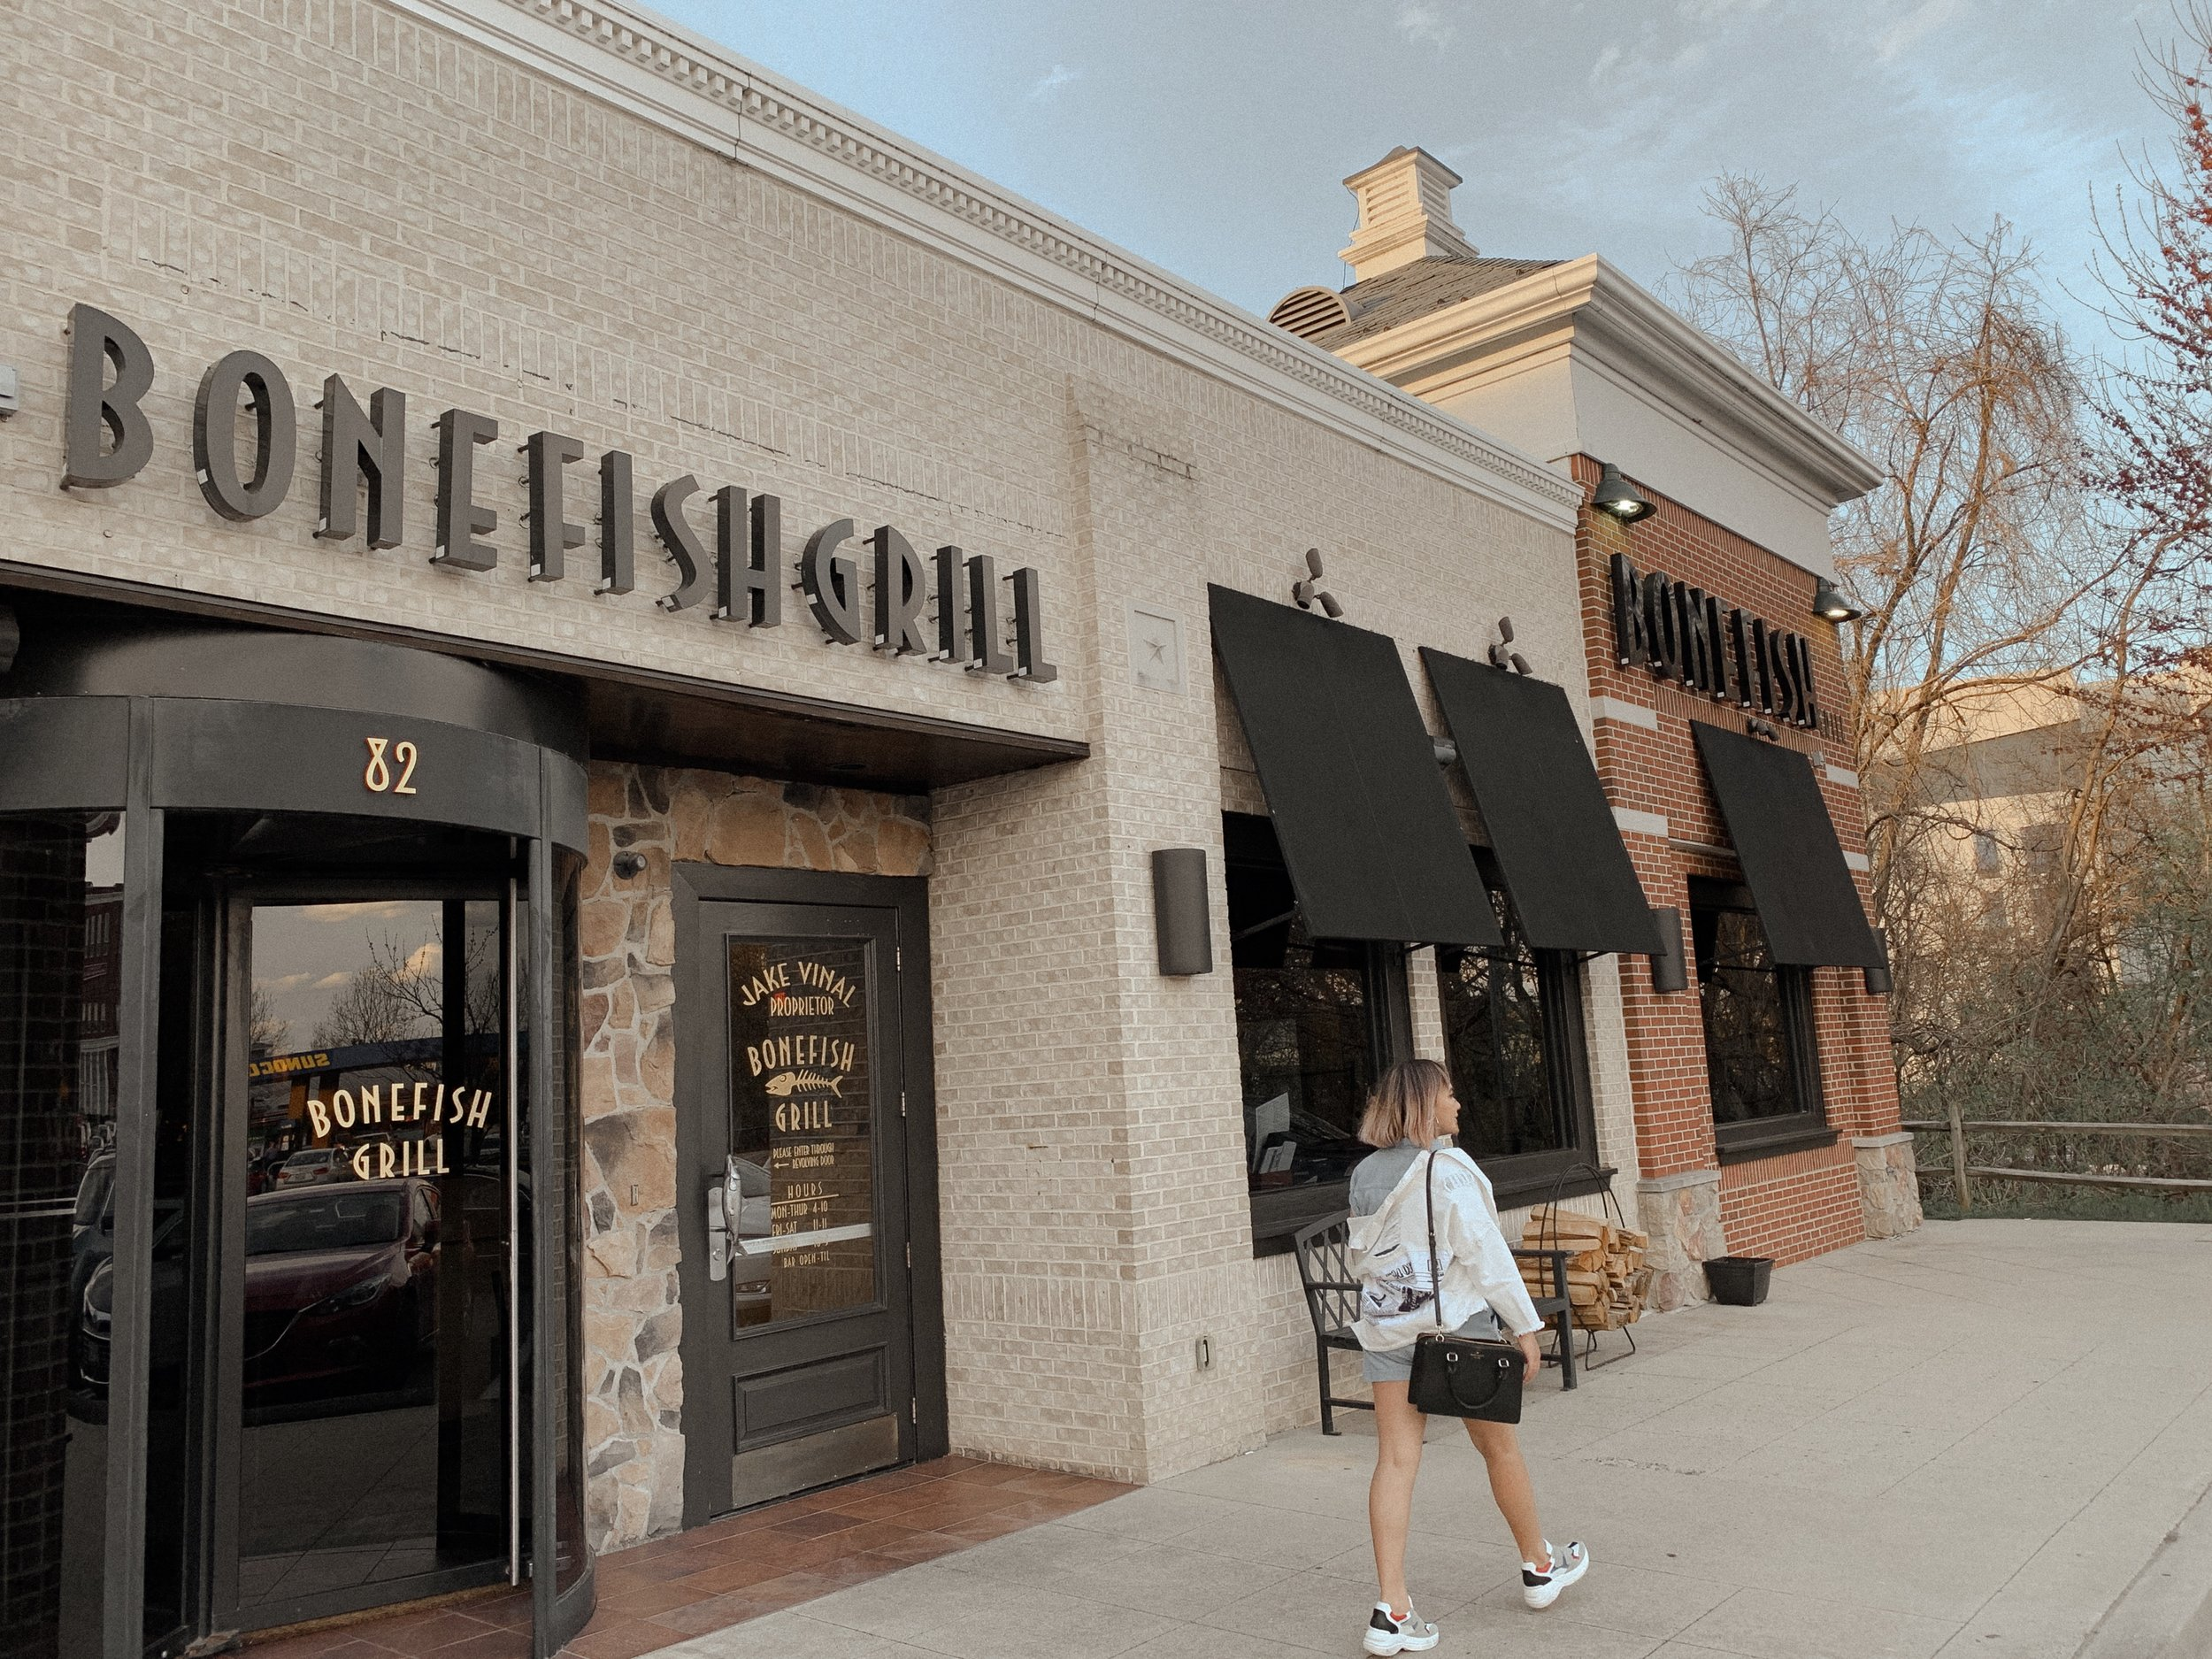 Enjoy a 3-Course Meal for Two for only $49 - Bonefish Grill Review and Giveaway